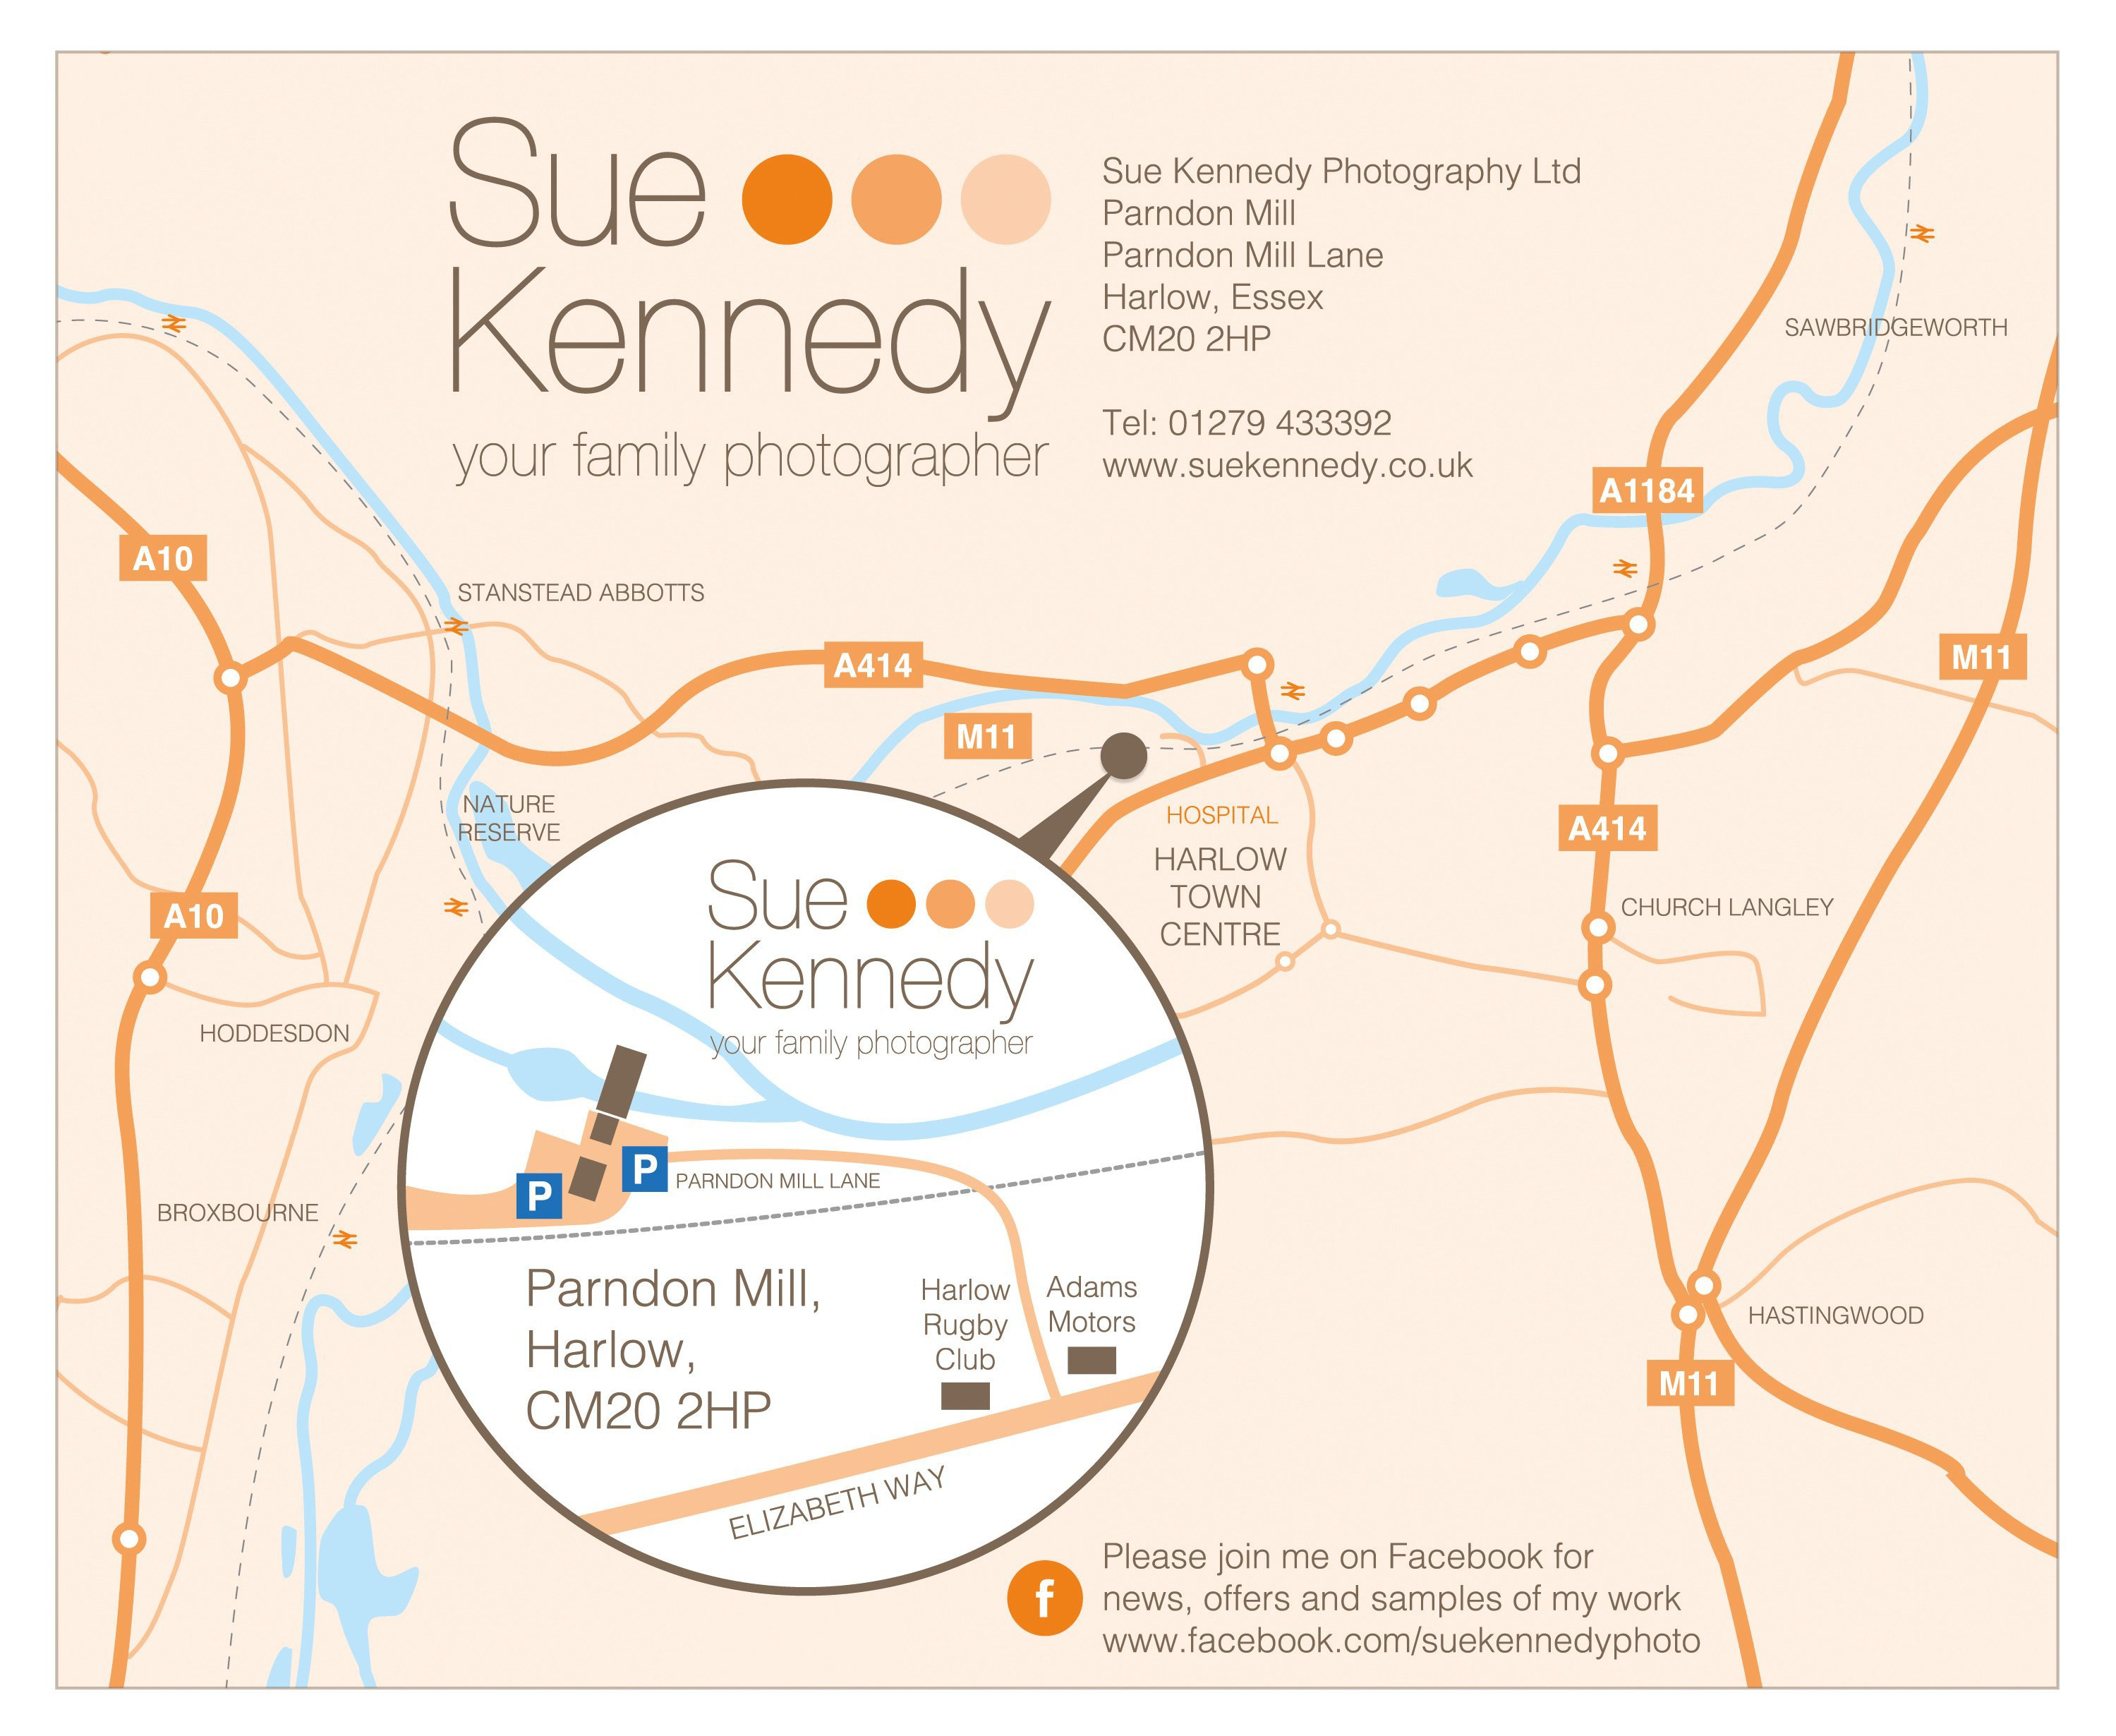 Map of directions to Sue Kennedy Photography at Parndon Mill, Harlow, Essex, CM20 2HP